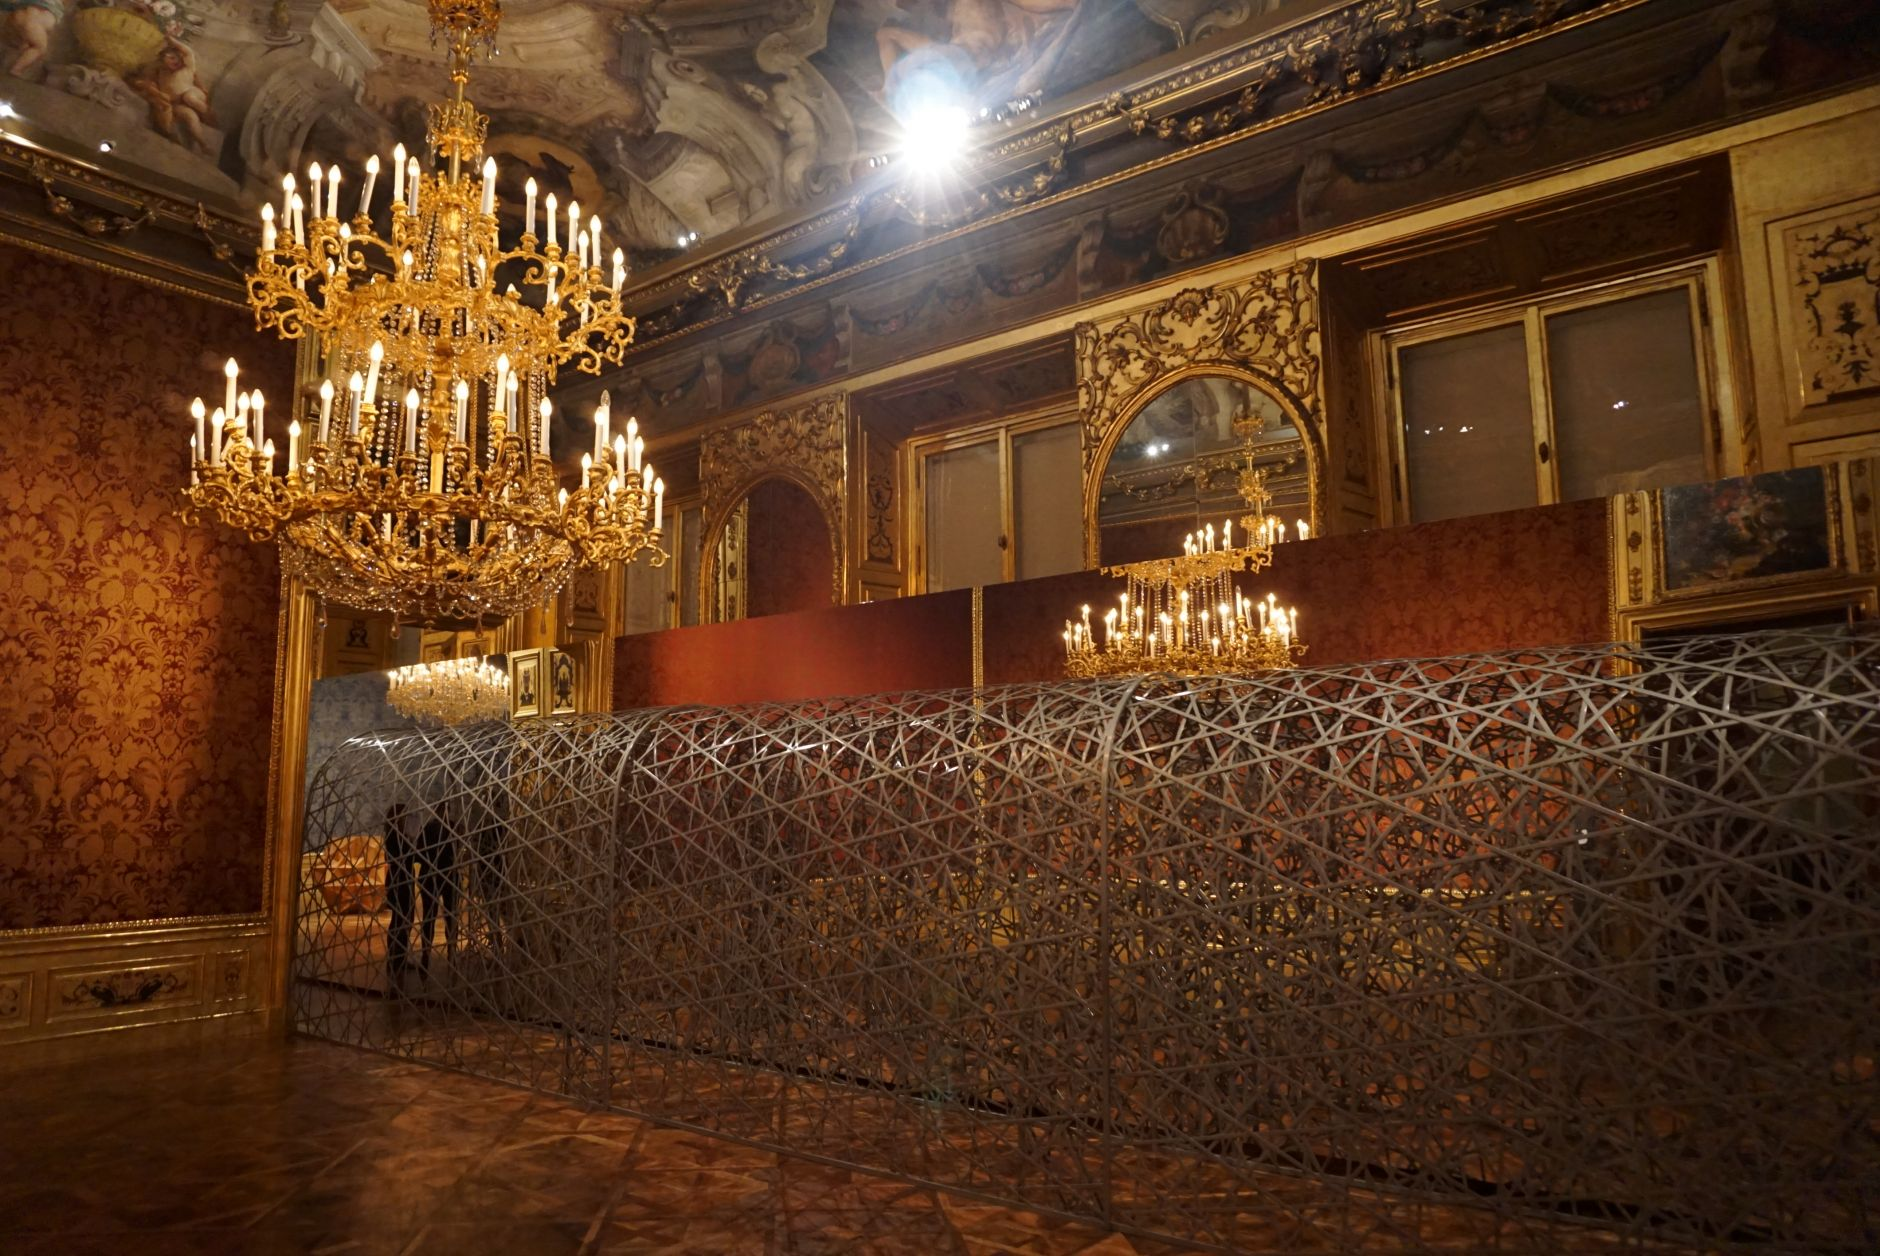 dc-art-olafur-eliasson-baroque-baroque-the-winter-palace-of-prince-eugene-of-savoy-vienna-27